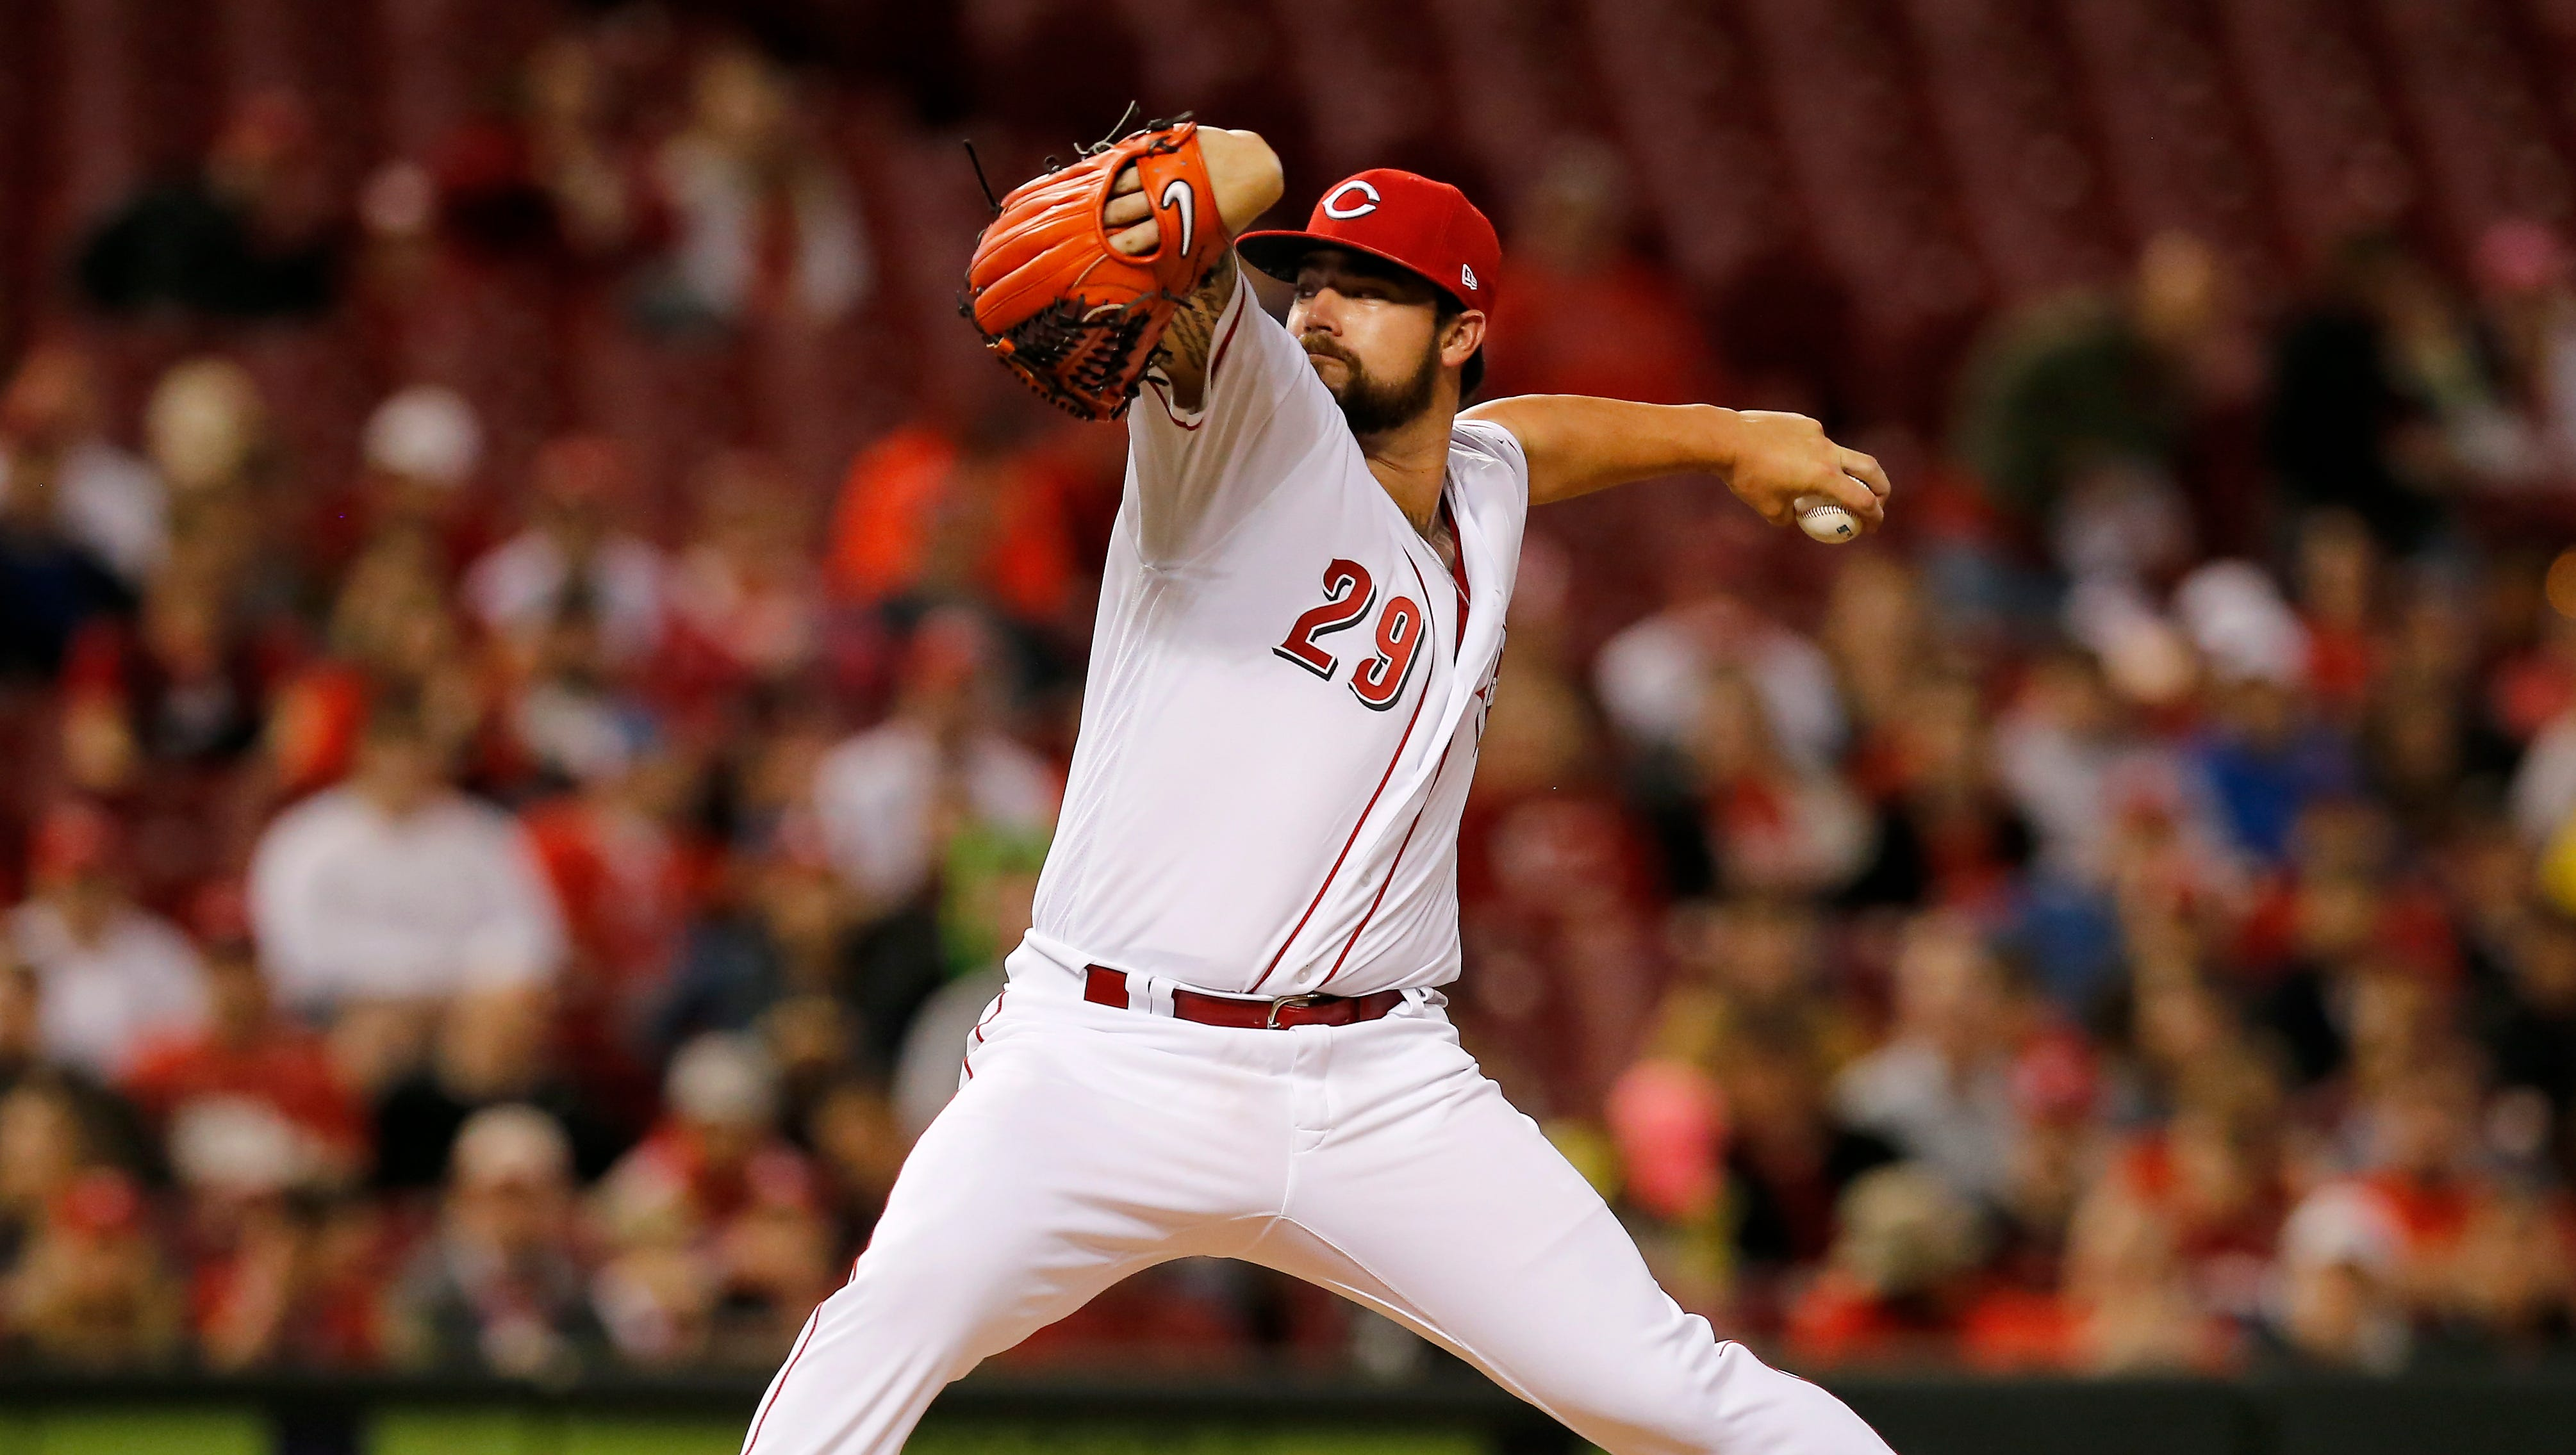 Finnegan leads Reds past Phillies